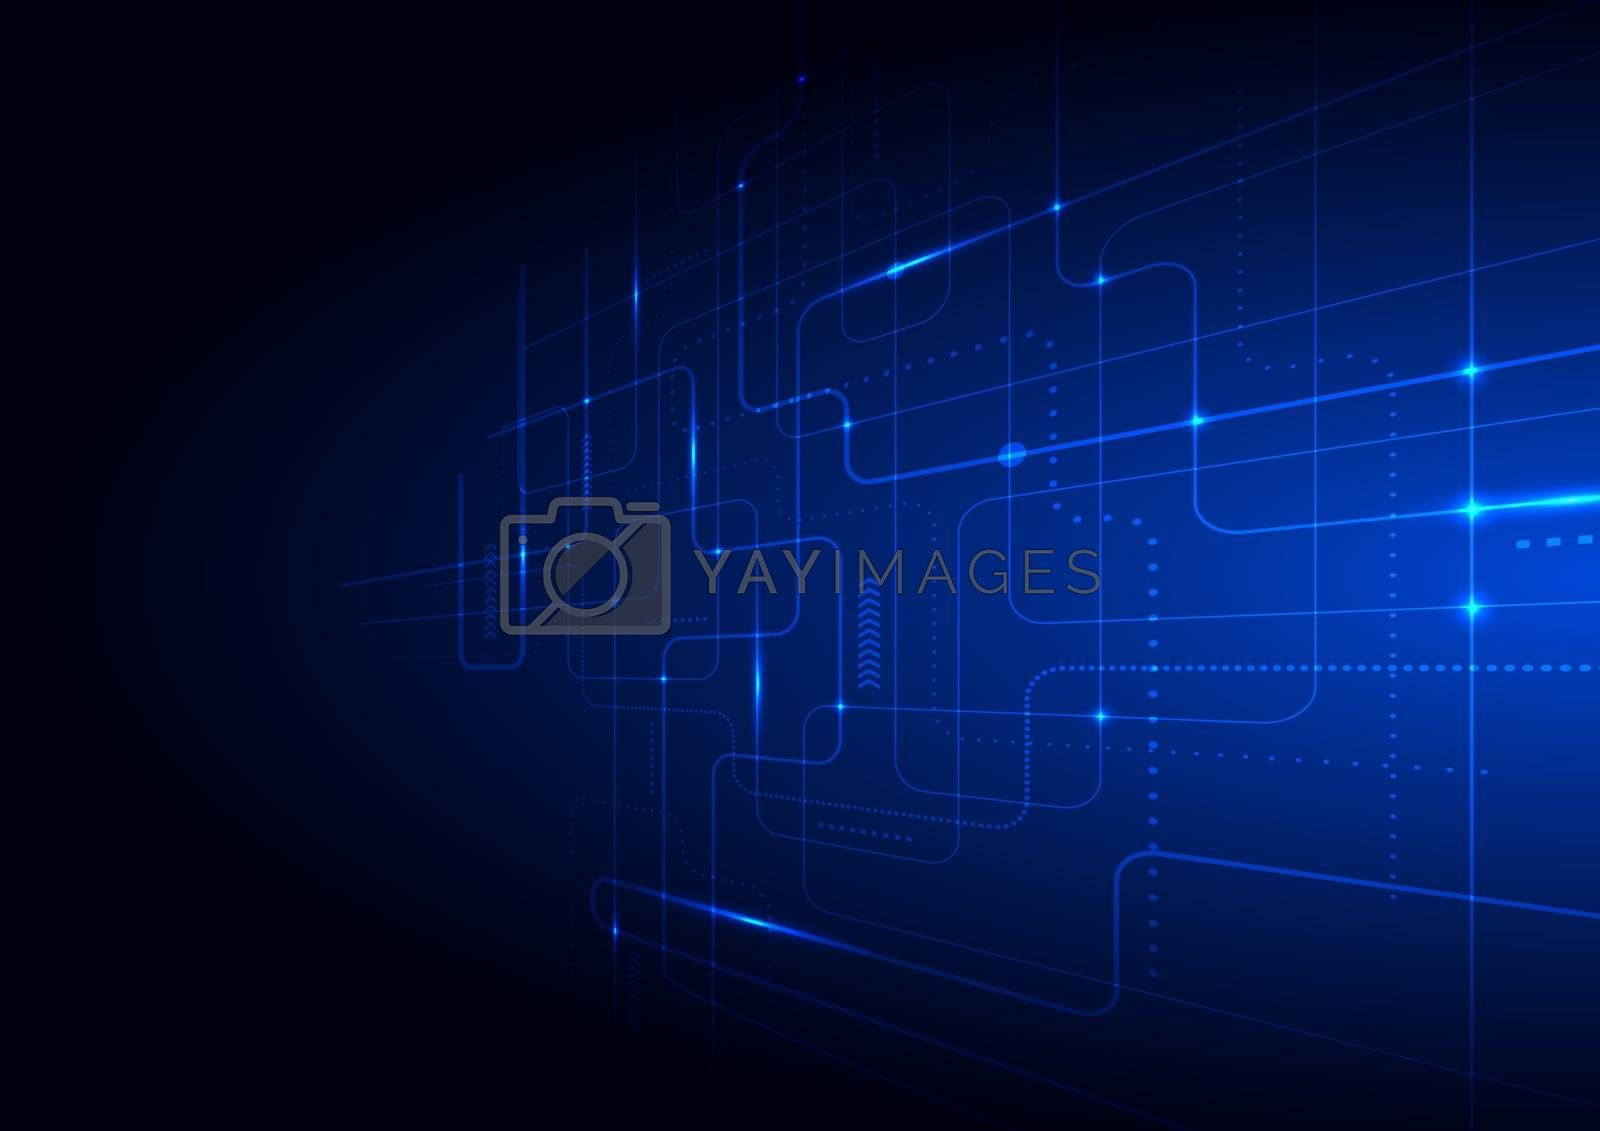 Abstract technology futuristic concept glowing blue lines and lighting perspective on dark background. Vector illustration